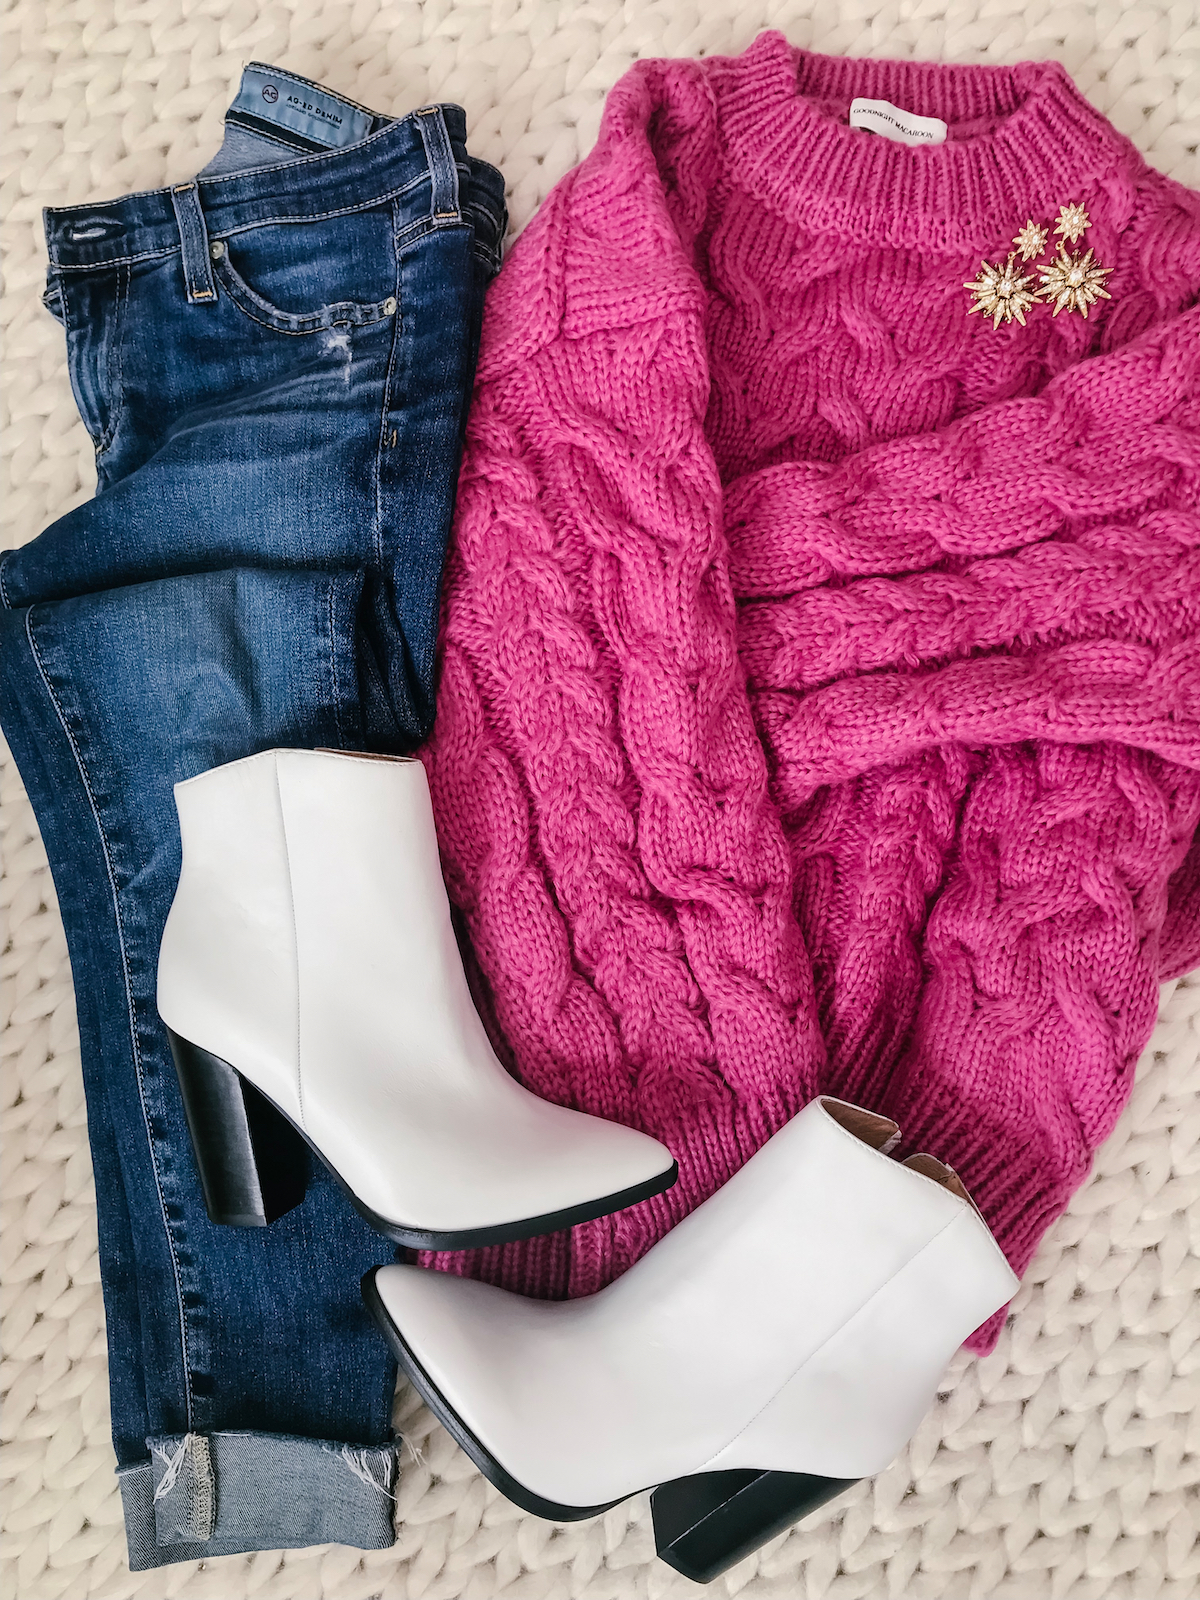 Winter outfit - pink sweater and white booties